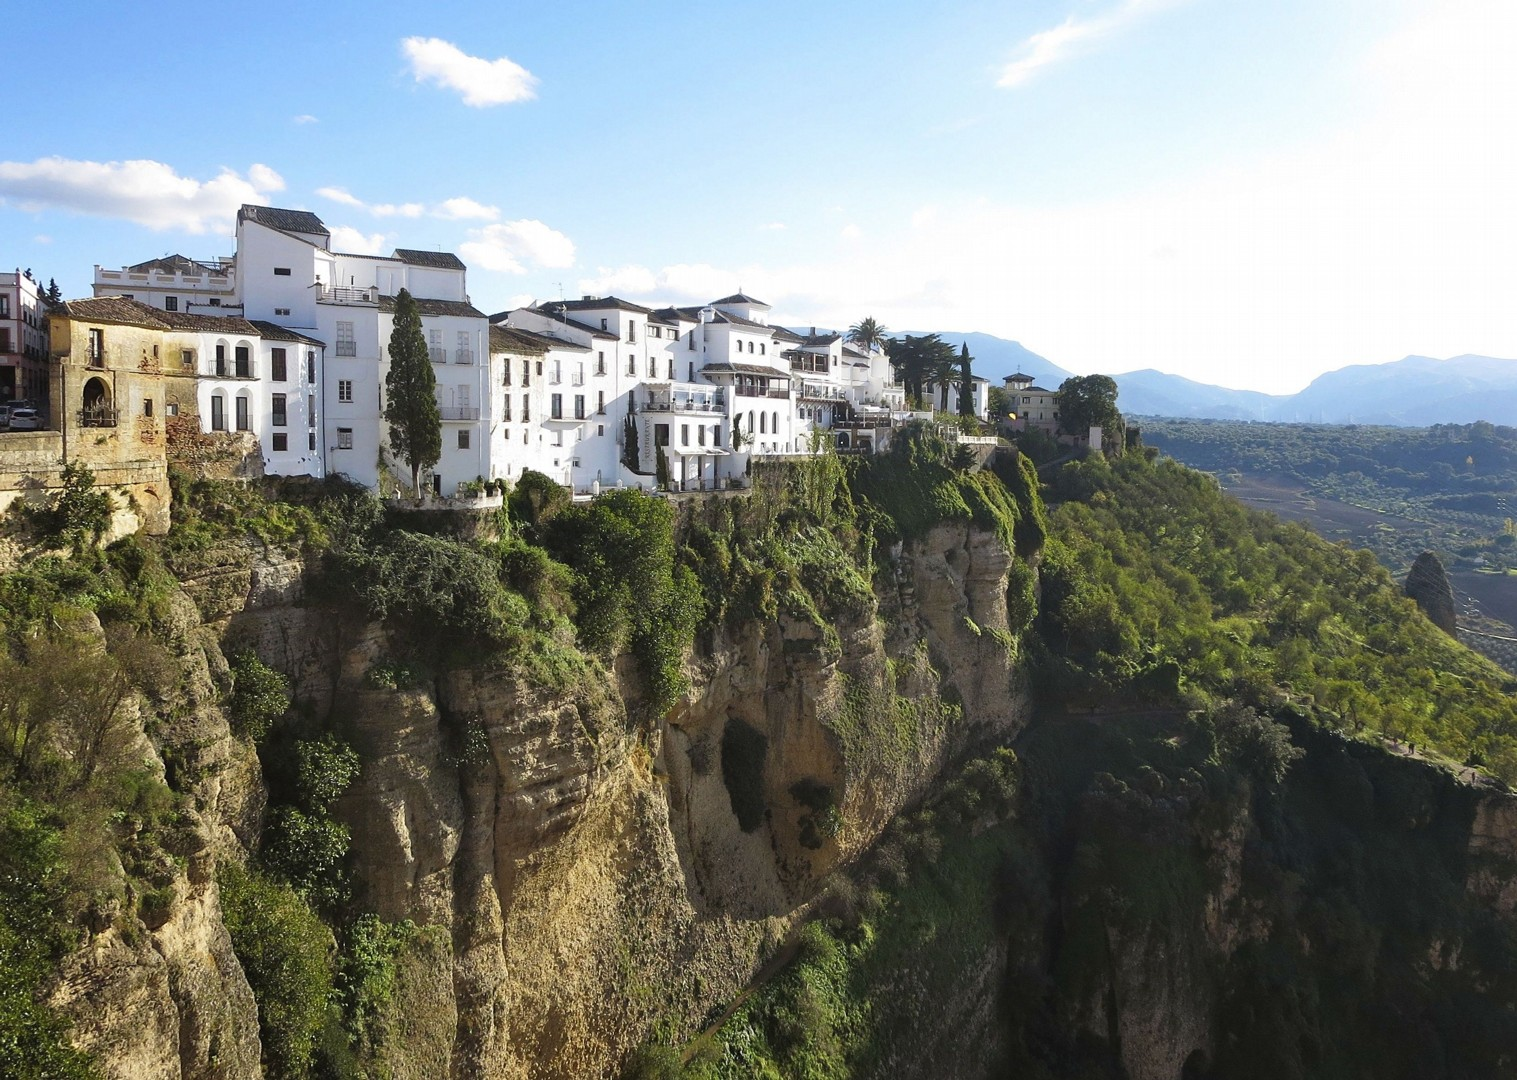 _Holiday.767.13308.jpg - Southern Spain - Andalucia - Los Pueblos Blancos - Guided Road Cycling Holiday - Road Cycling